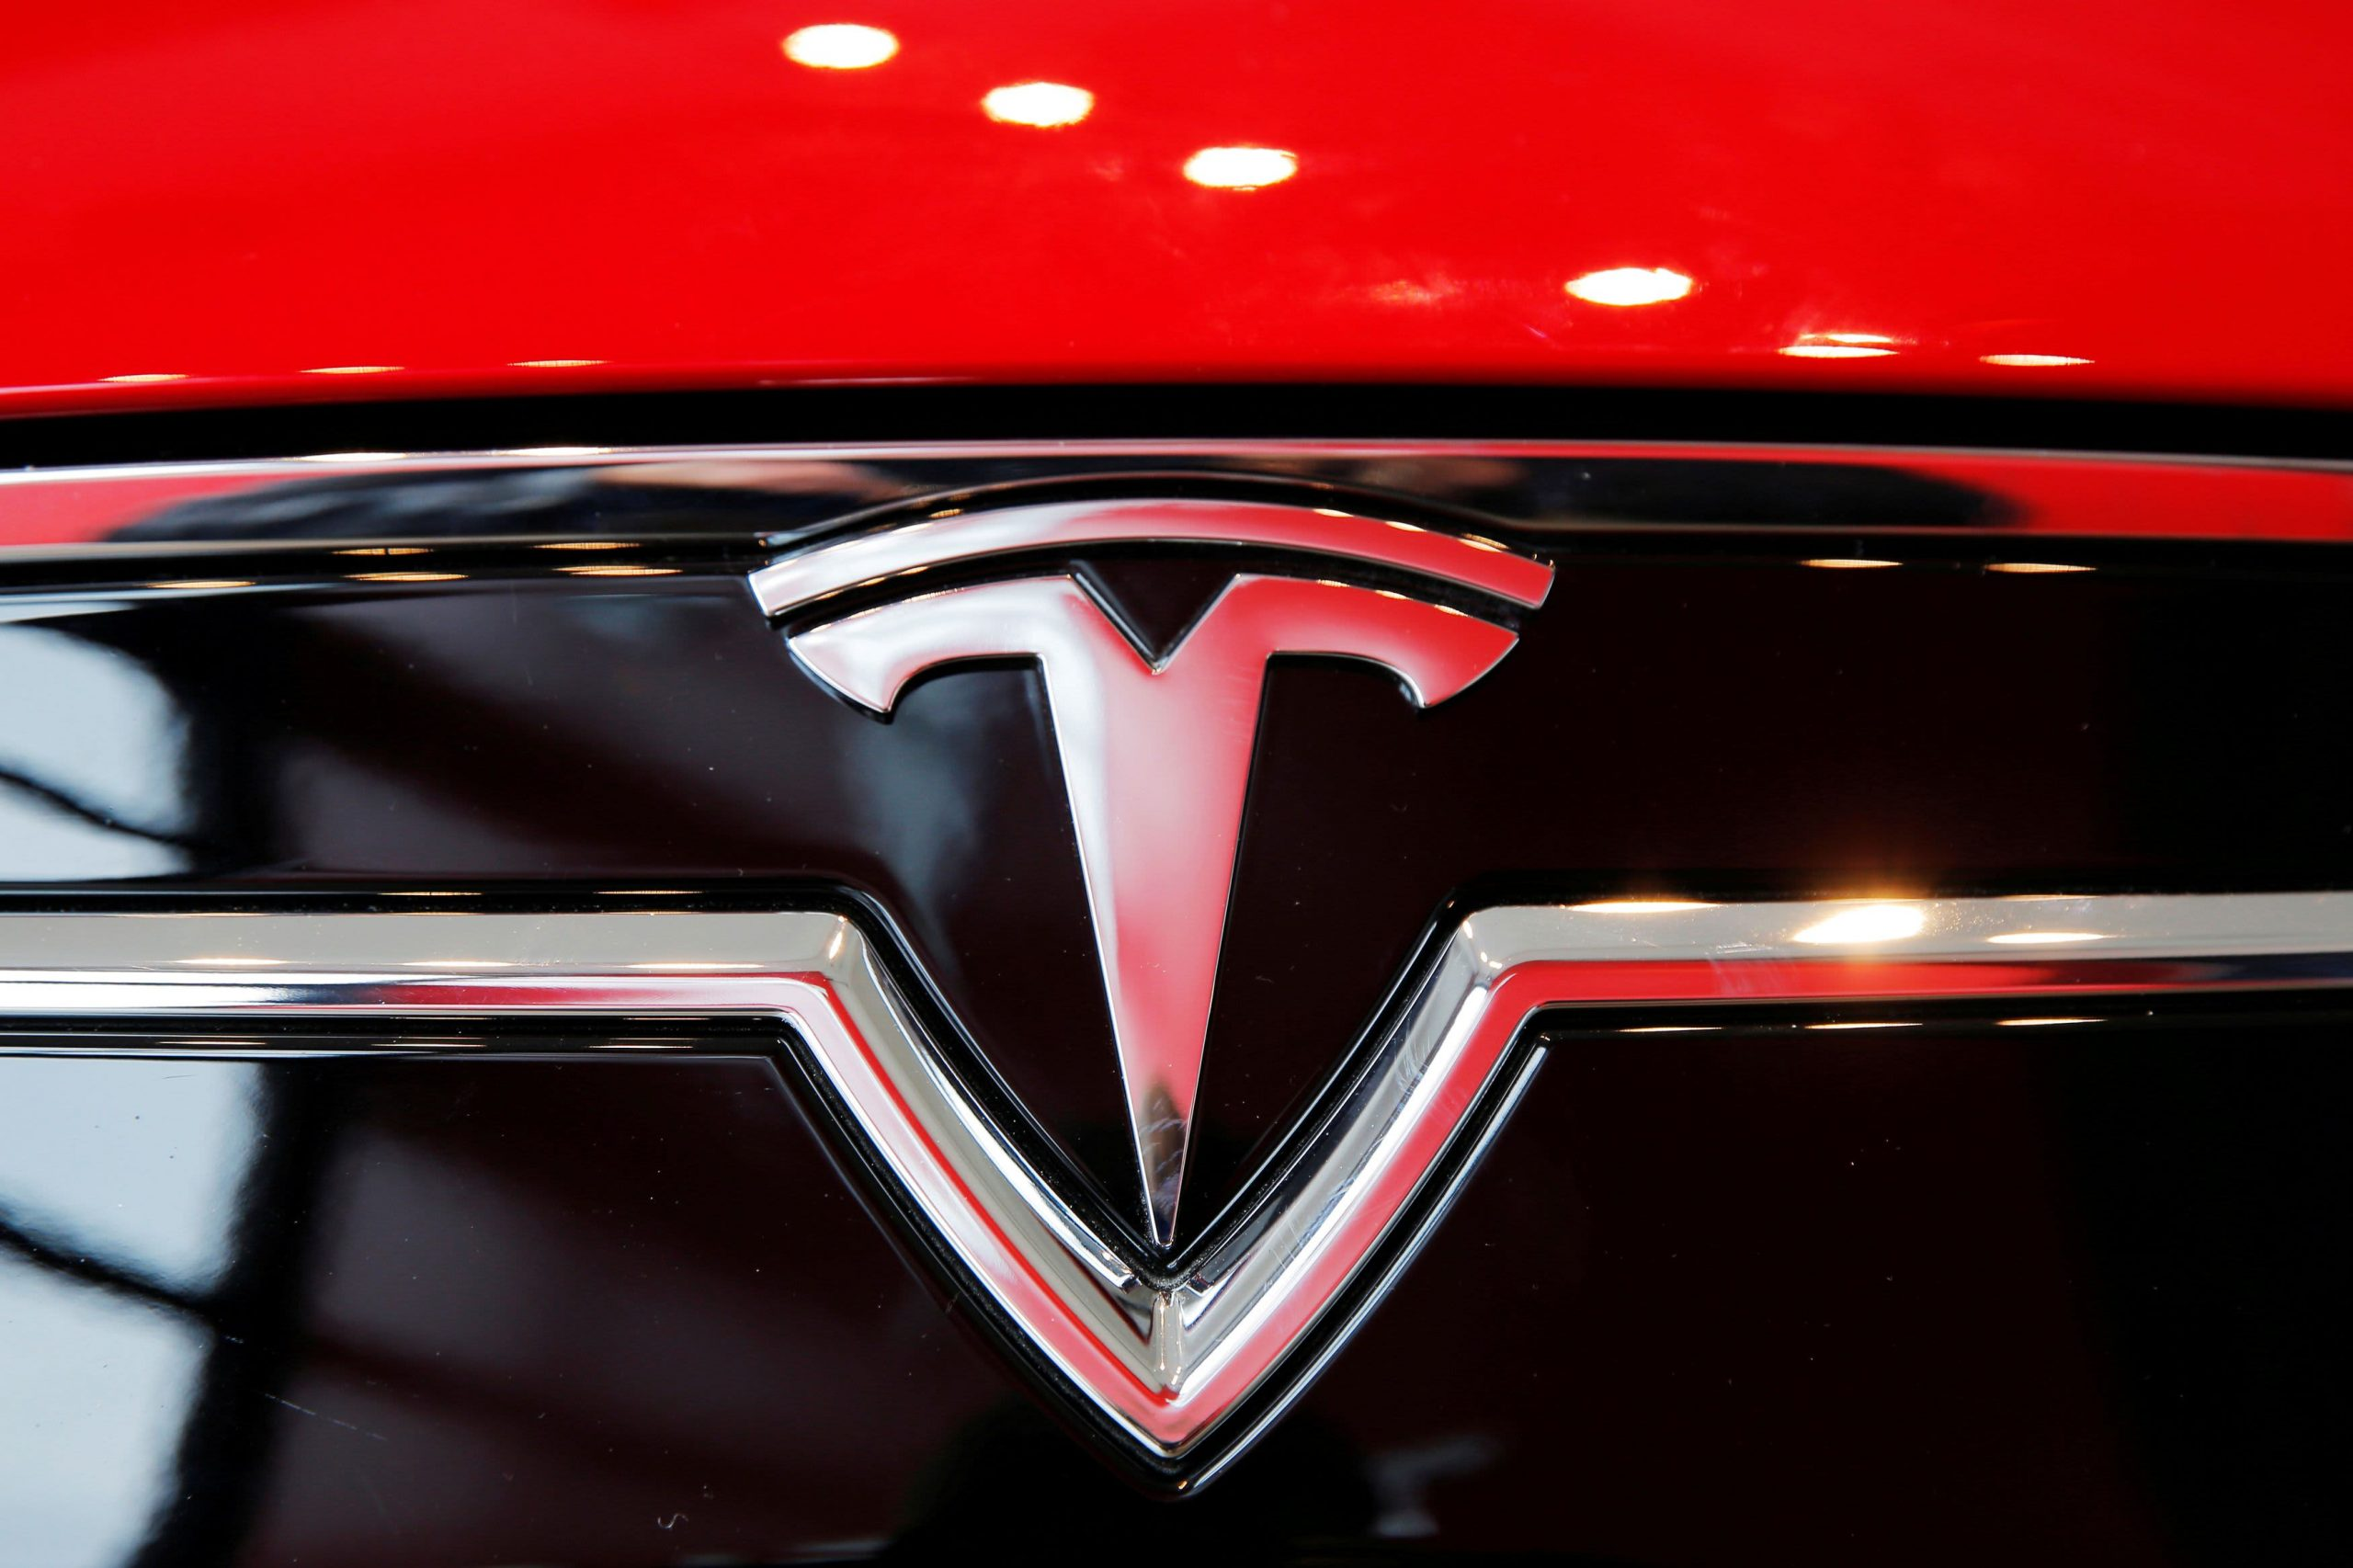 'No one was driving' in Tesla crash that killed two men in Spring, Texas: Report